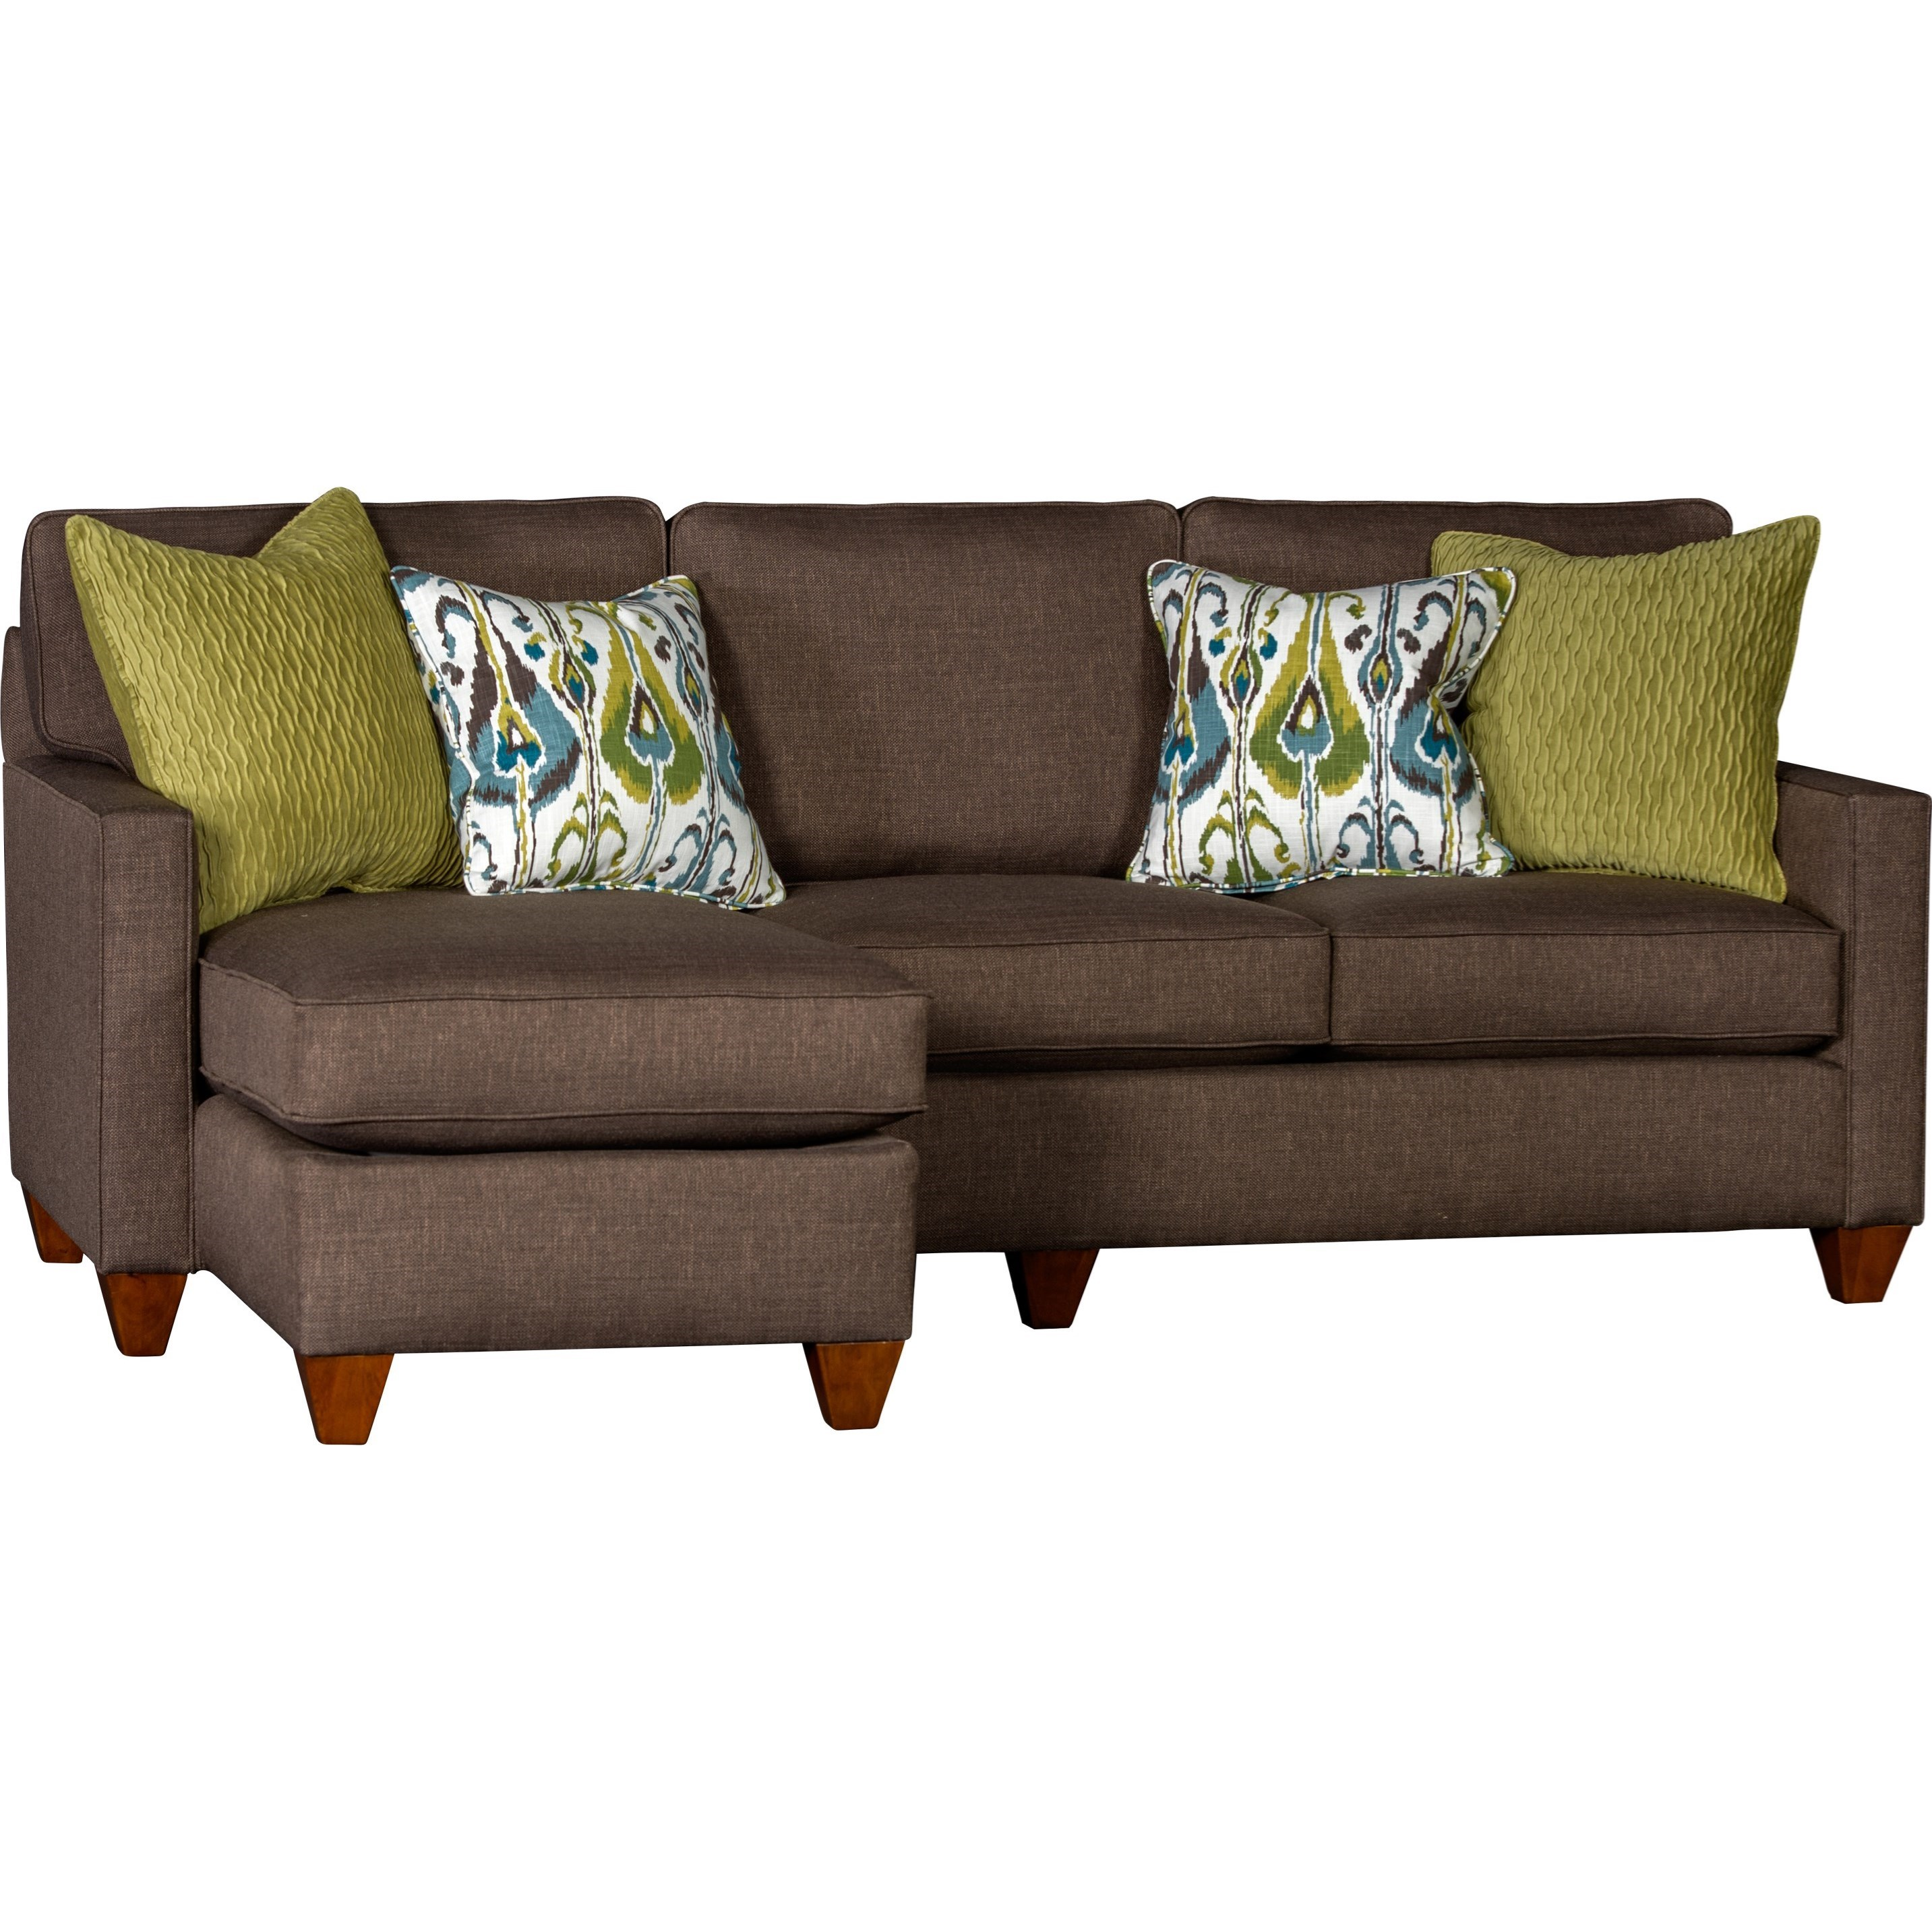 3830 Sectional with 3 Seats and Chaise by Mayo at Johnny Janosik